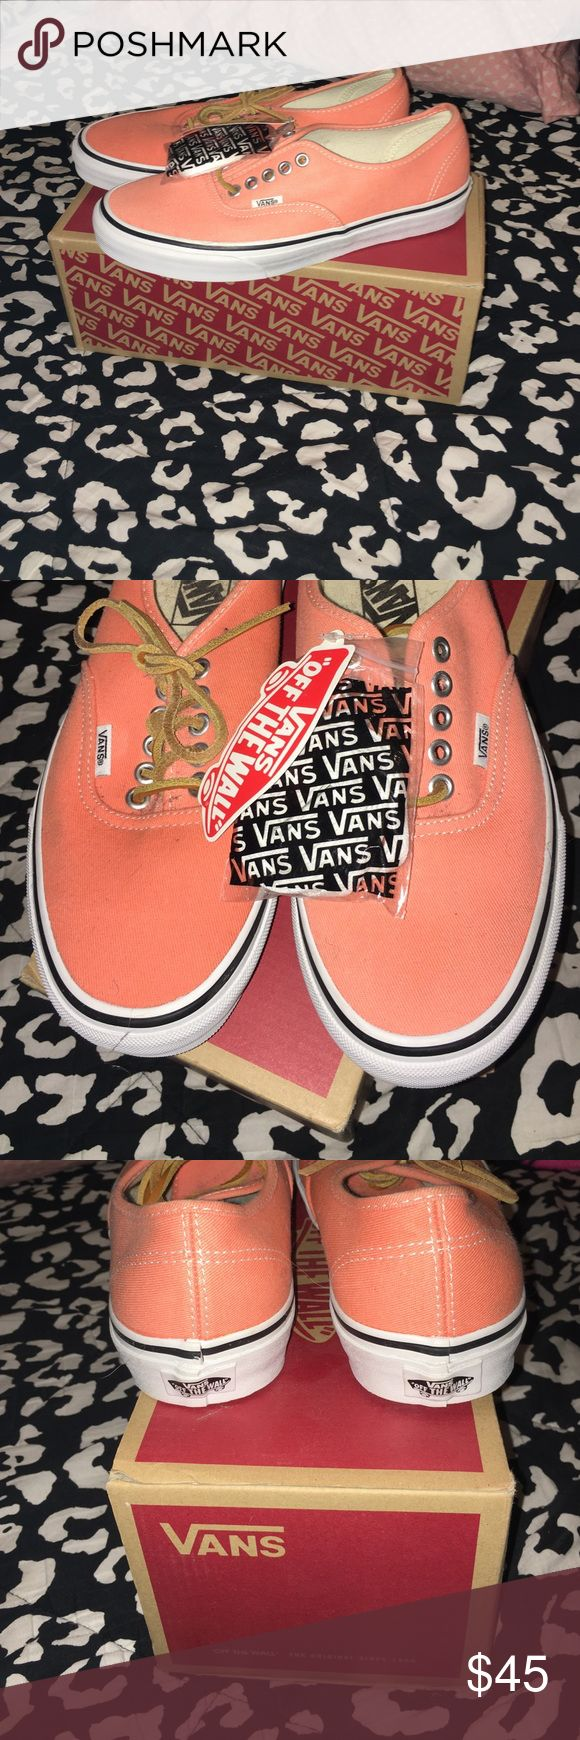 NWT Coral Vans  Super cute coral vans with leather laces! Also comes with normal white laces if you don't like the leather! NWT never been worn in perfect condition Vans Shoes Sneakers